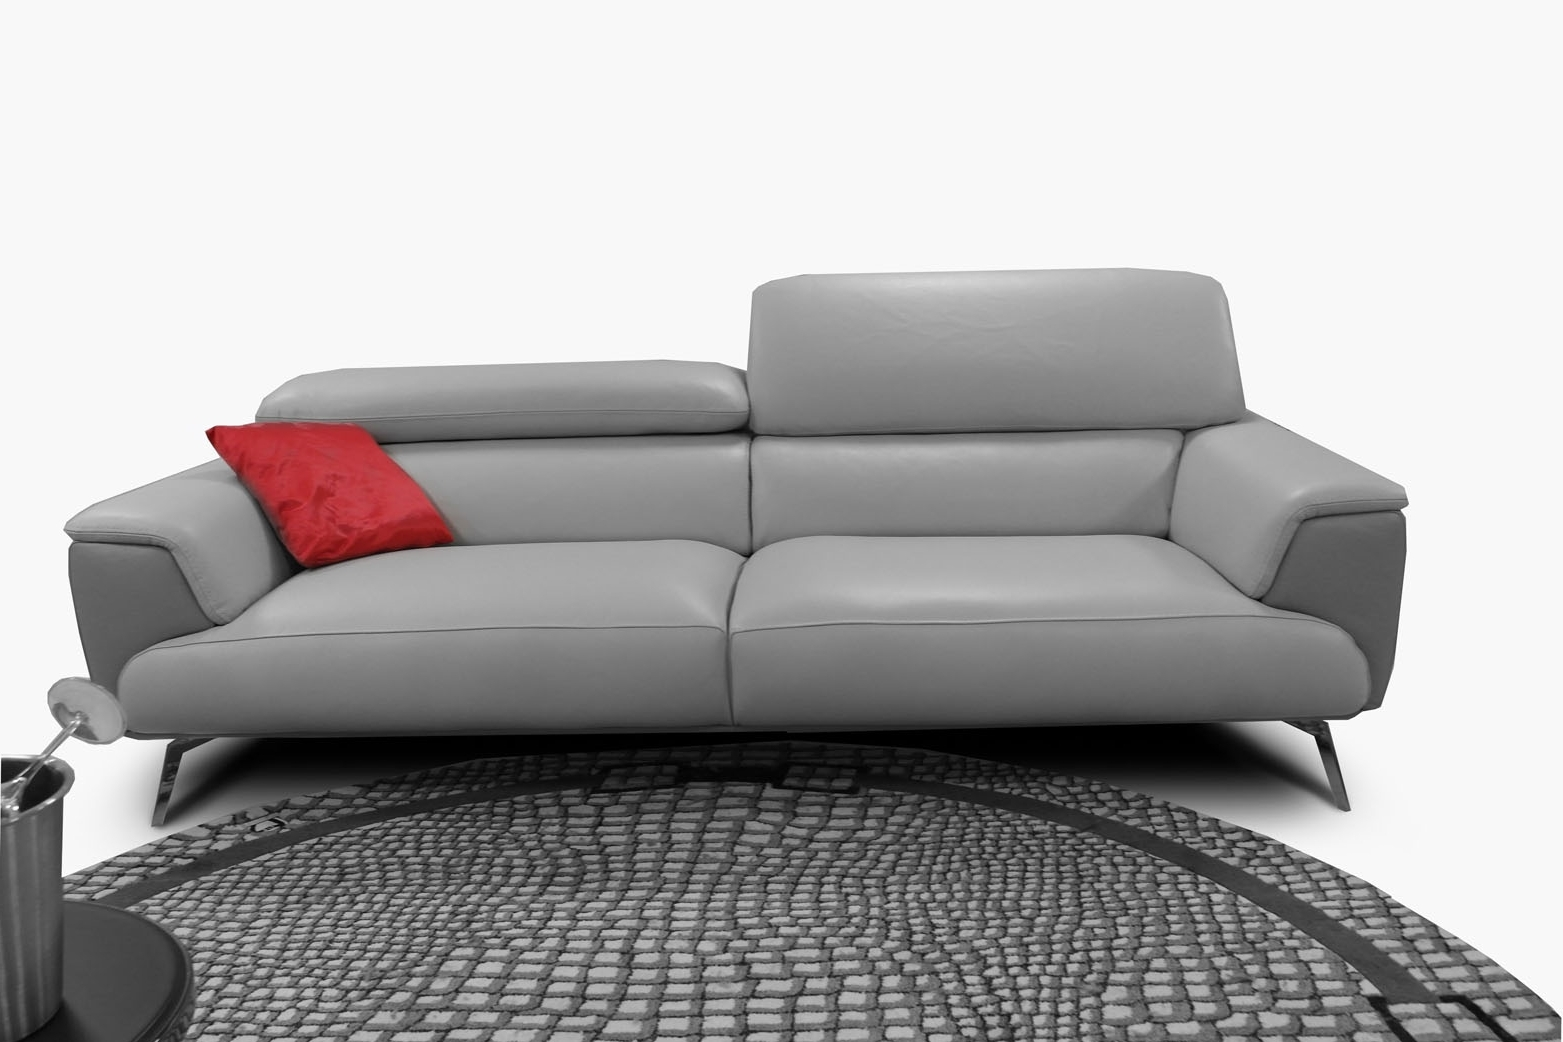 Well Known Round & Unusual Sofas • Nieribarcelona For Unusual Sofas (View 19 of 20)